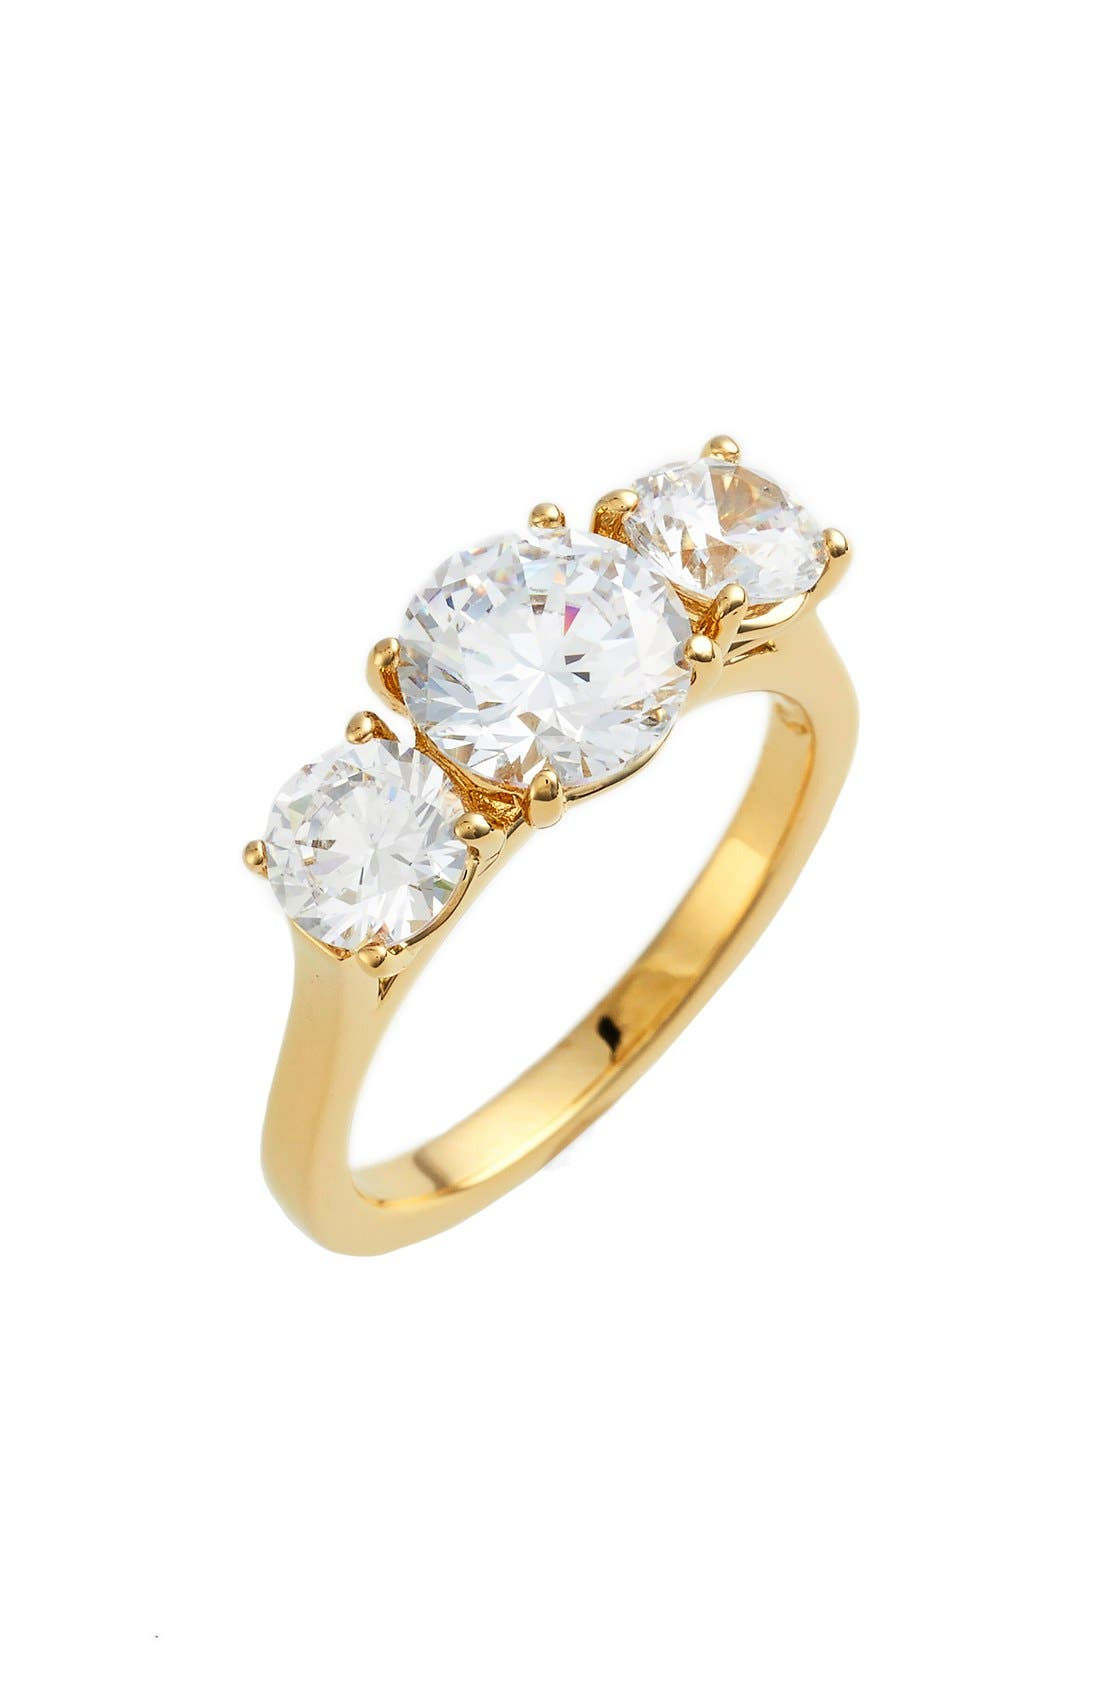 3-Stone Cubic Zirconia Ring,                             Main thumbnail 1, color,                             Gold